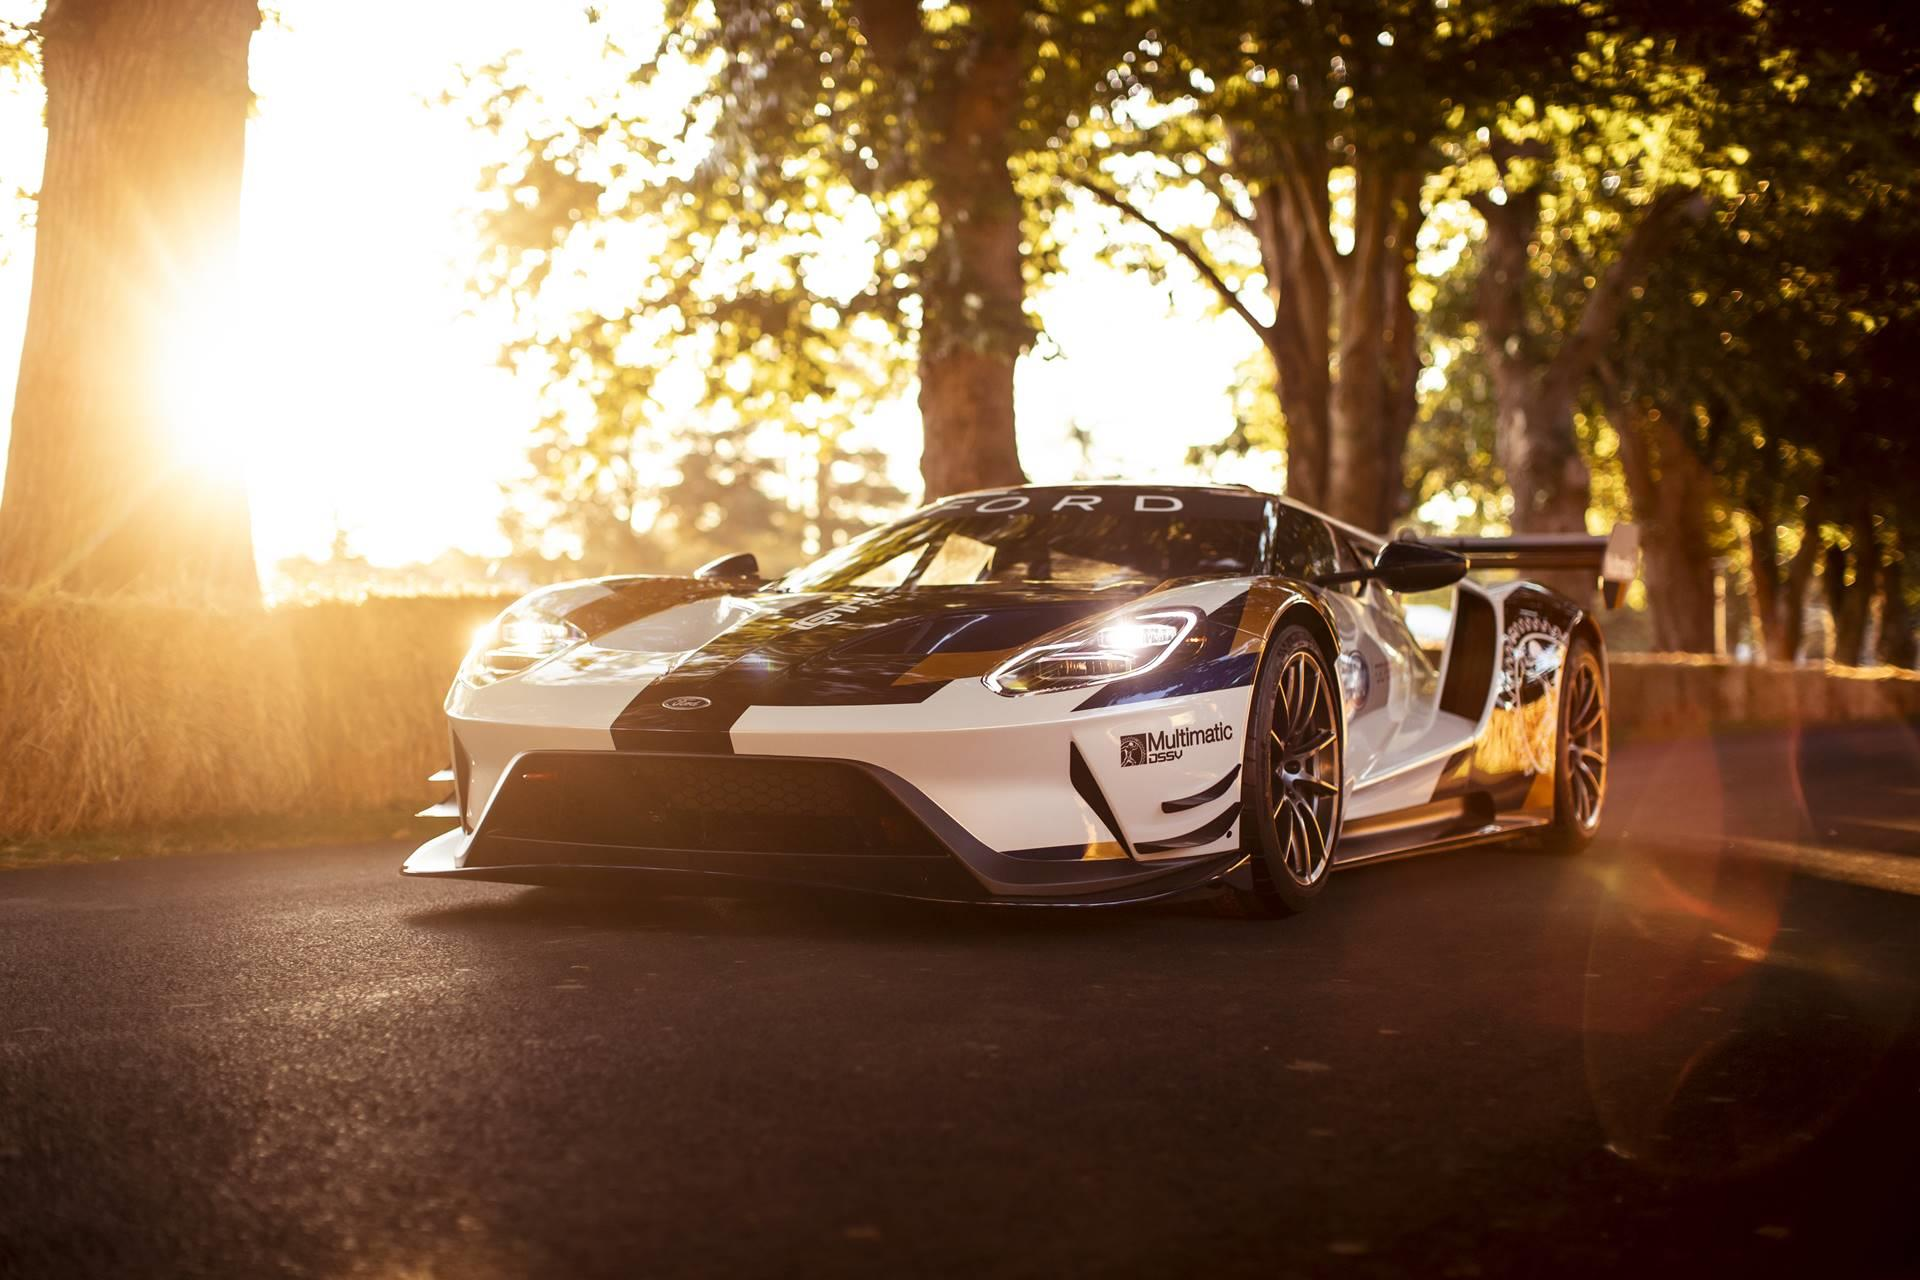 2019 Ford GT Mk II News and Information conceptcarzcom 1920x1280